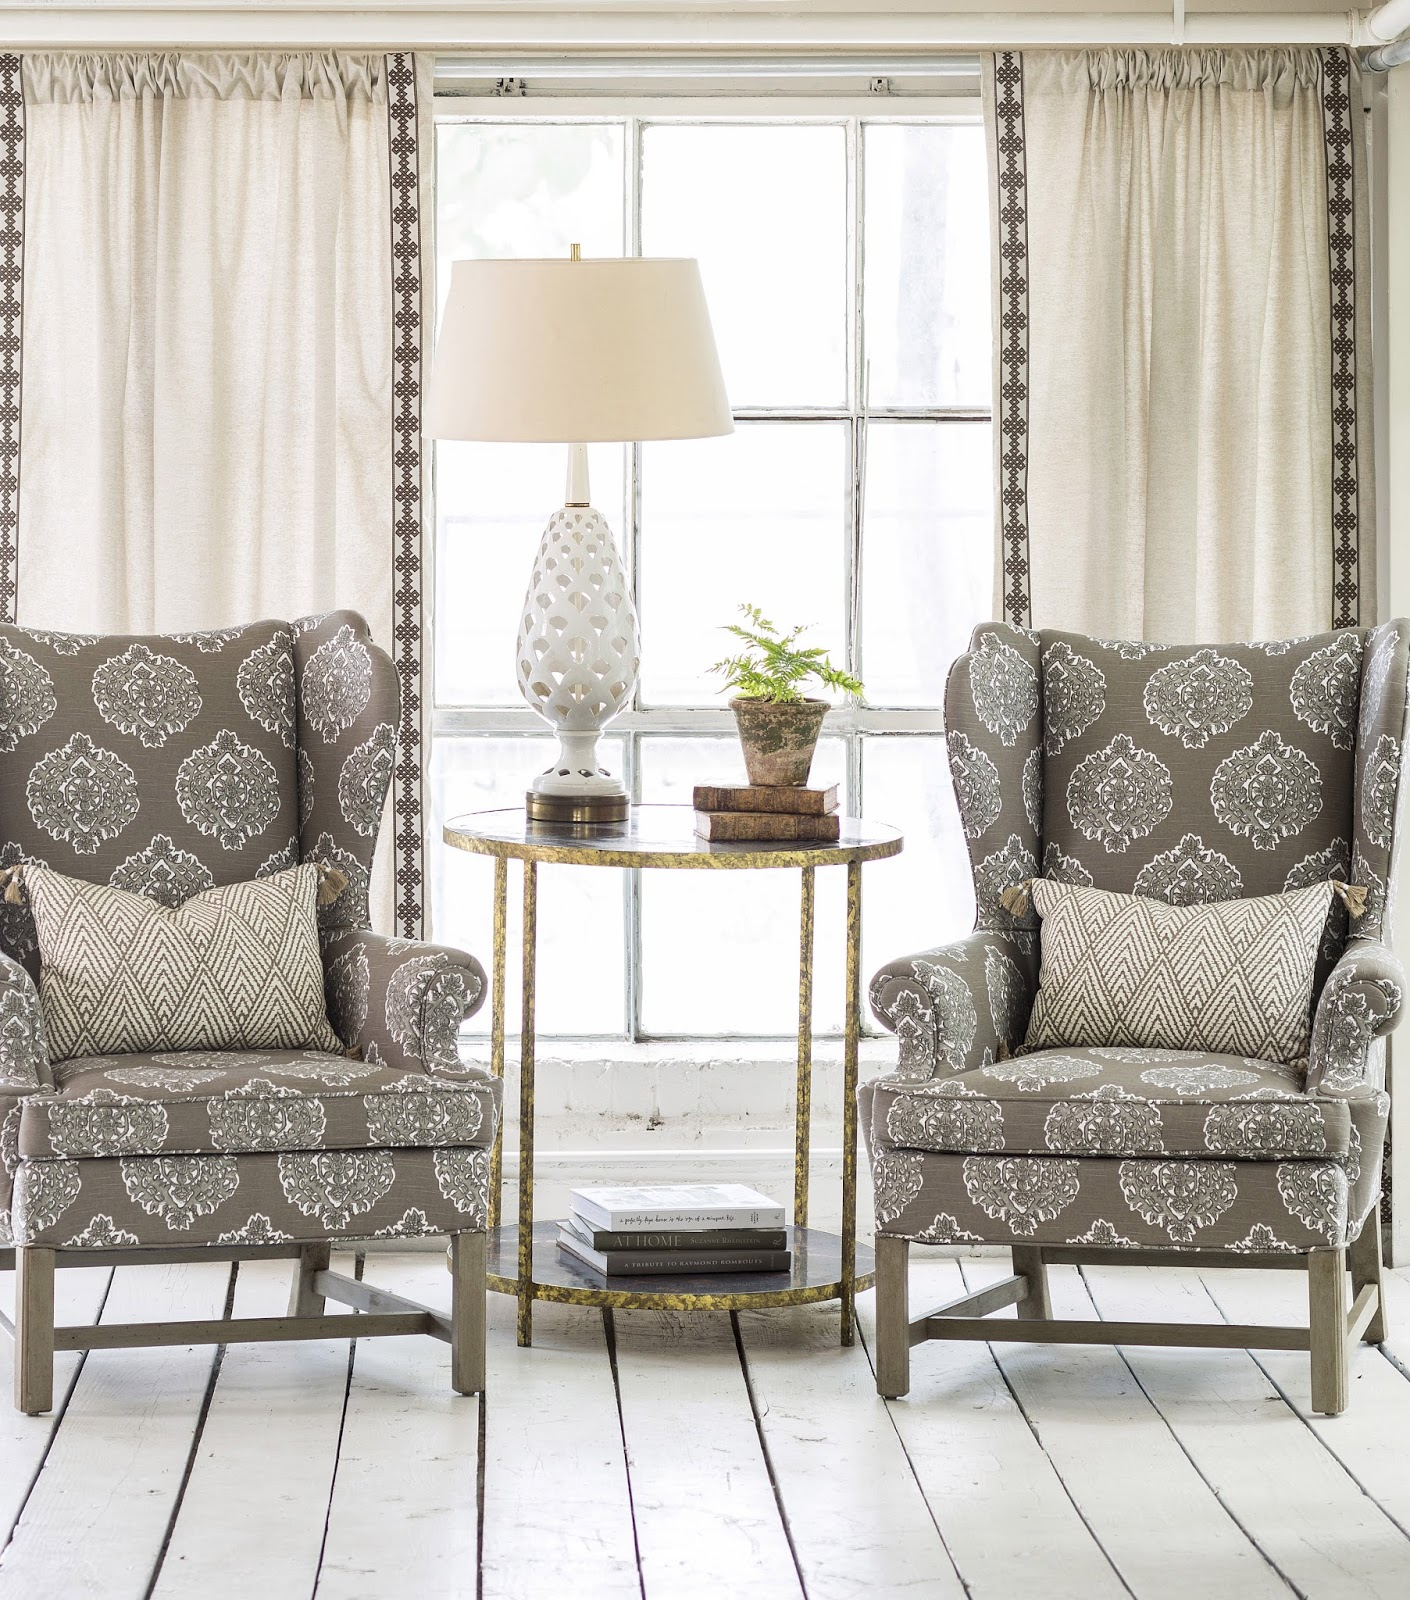 curtains-and-draperies-drapery-panels-exquisite-amount-of-drapery-panels-for-beautiful-window-ideas-curtain-drape-panel-drapes-window-curtains-drapes-drapery-curtain-curtains-panels.jpg